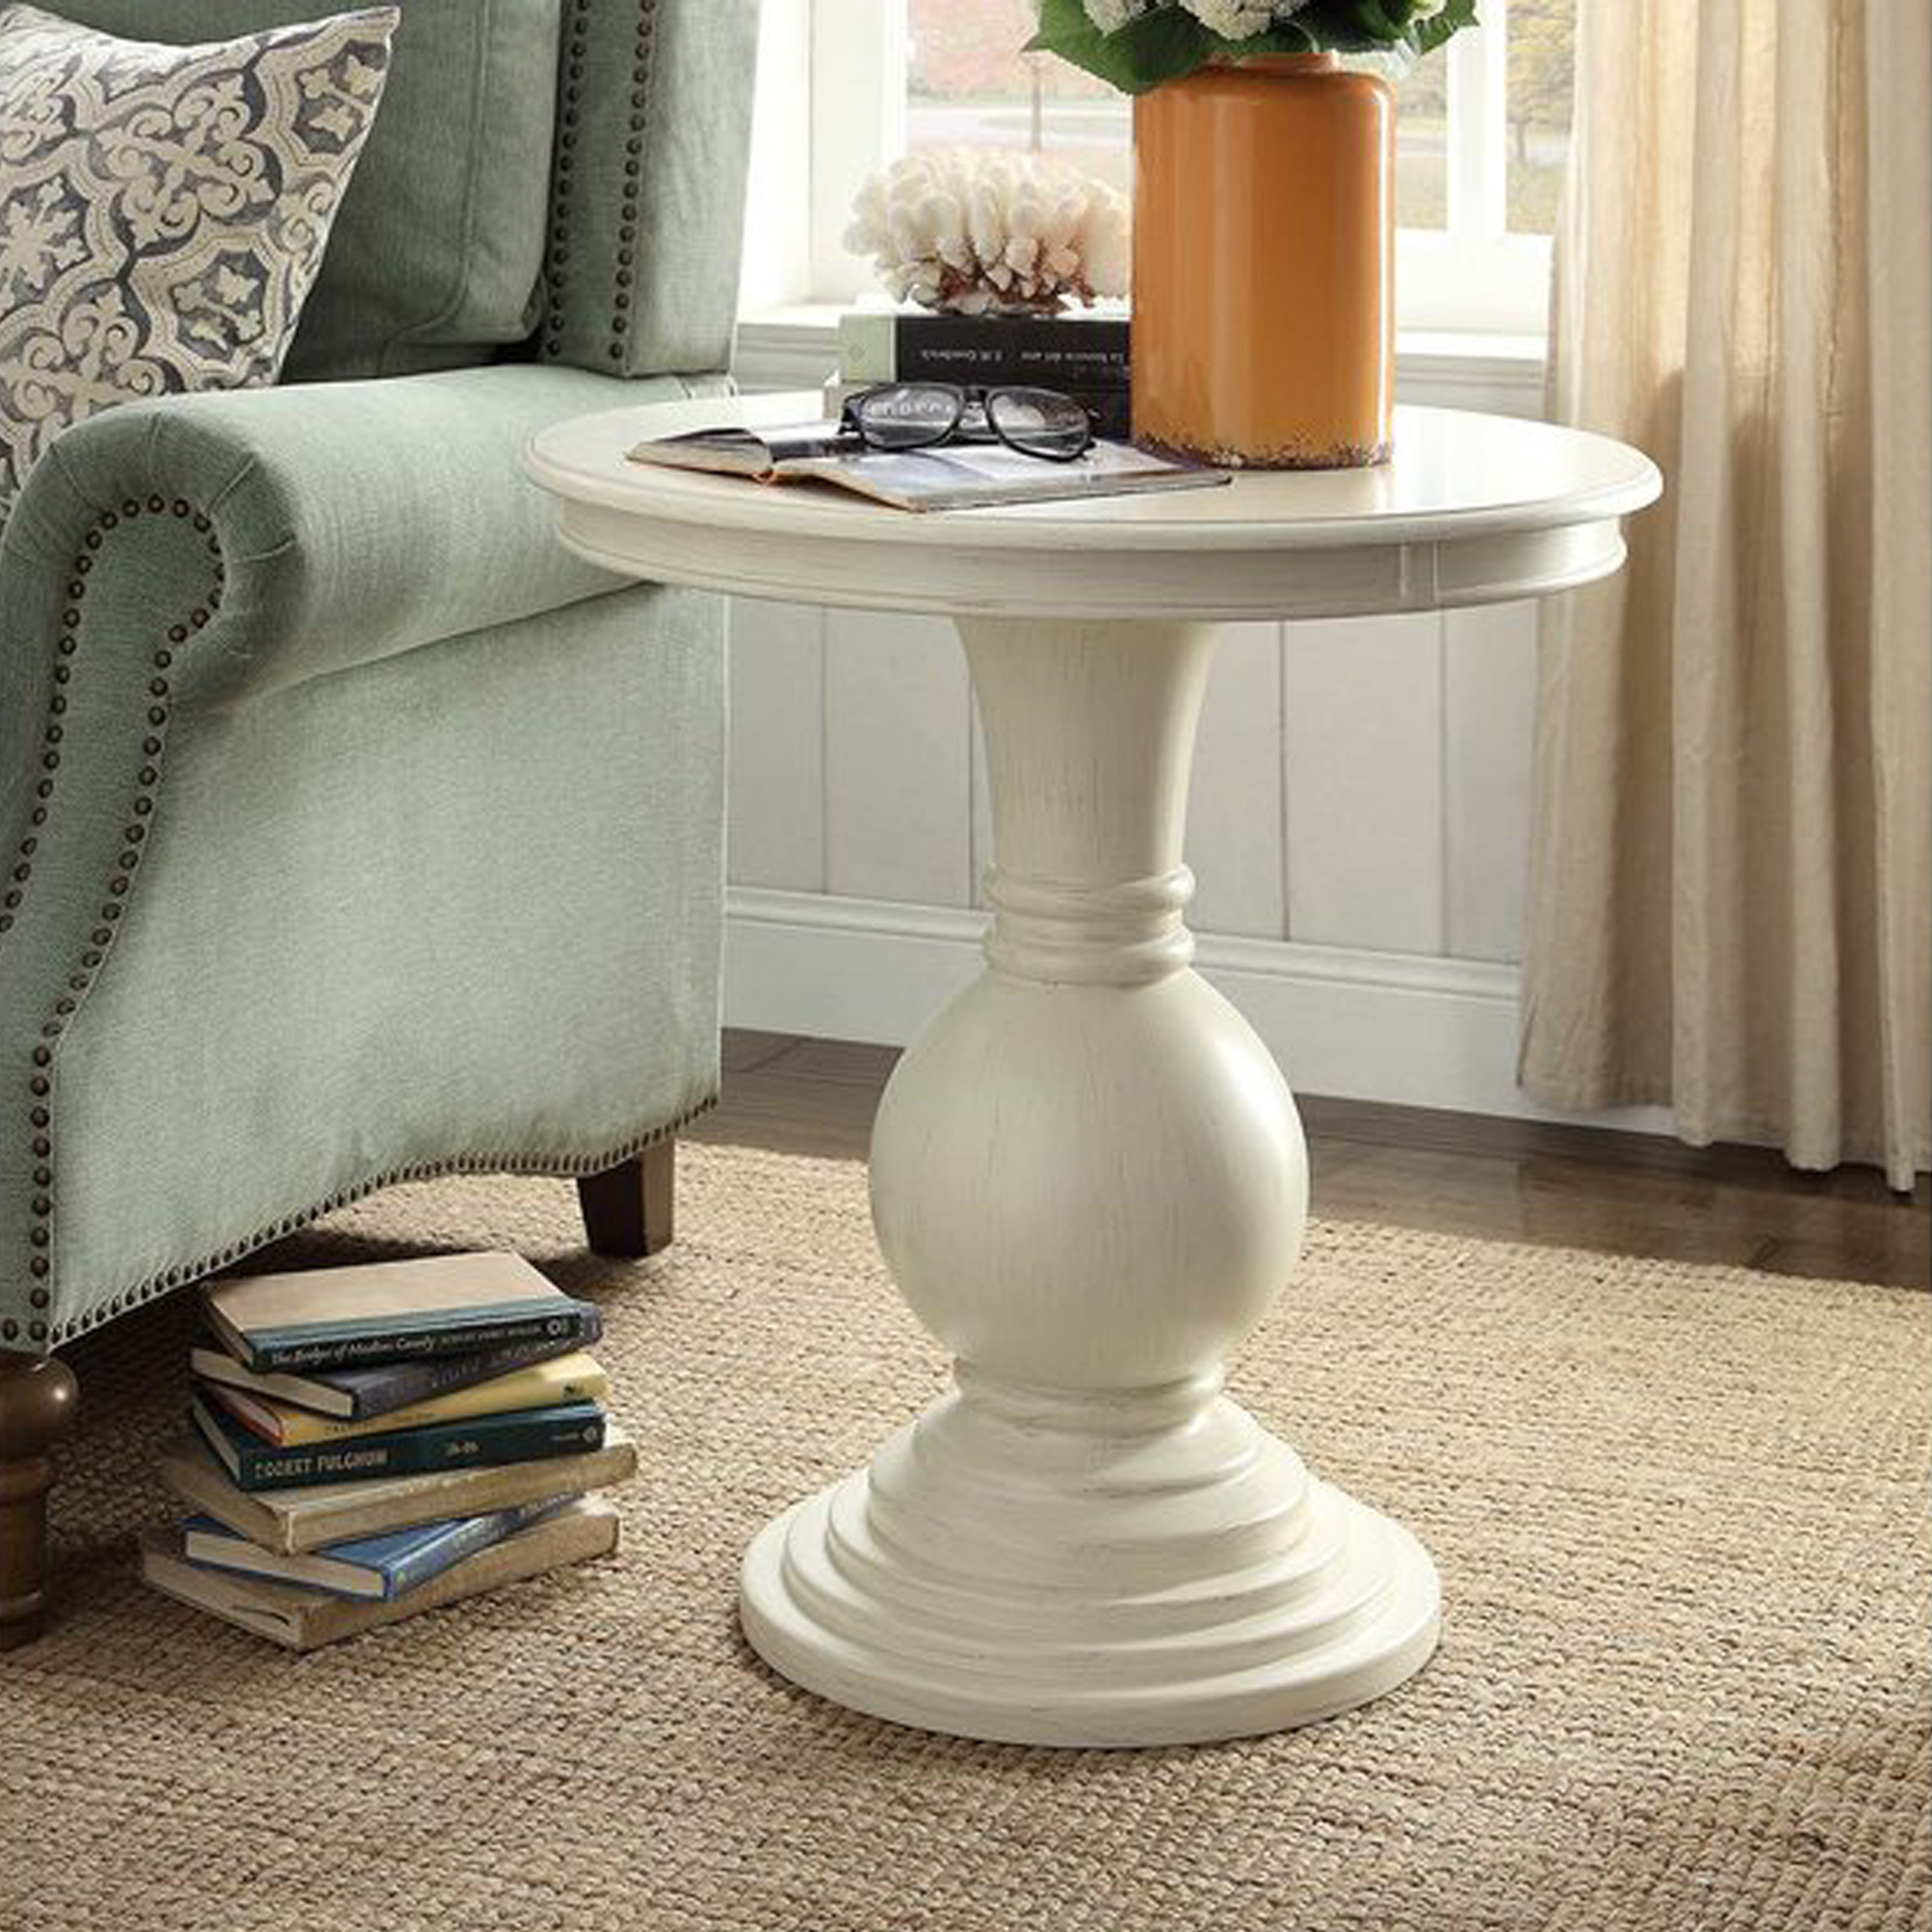 tall pedestal accent table design ideas round end tables side lamp for wrought iron small black distressed off white best accentuate your living beach themed furniture very narrow